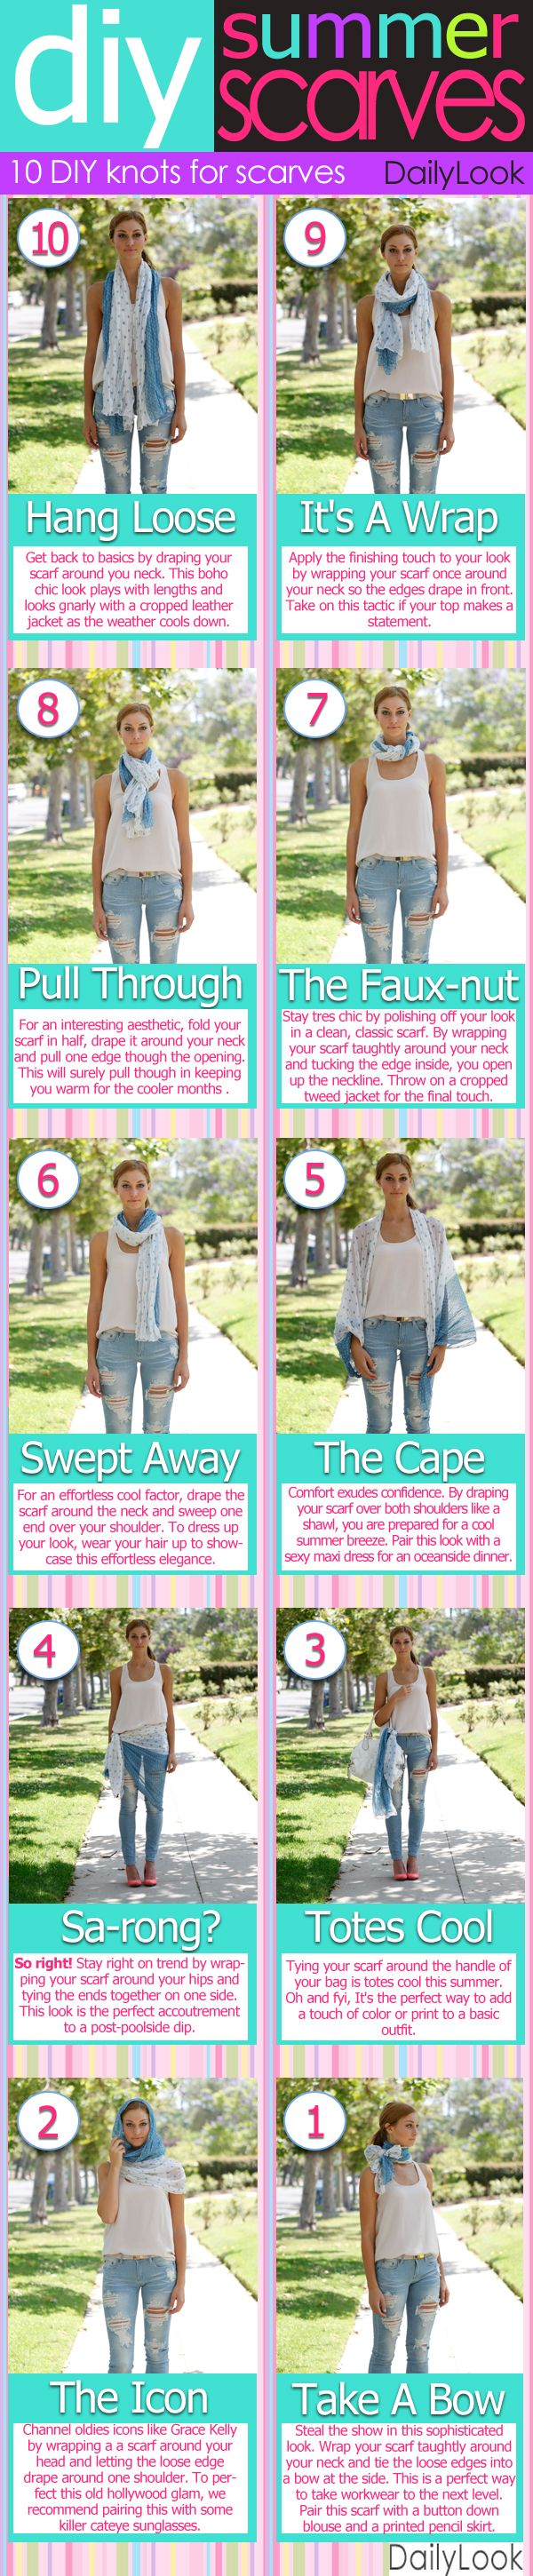 The 10 ways to wear a summer scarf on DailyLook.